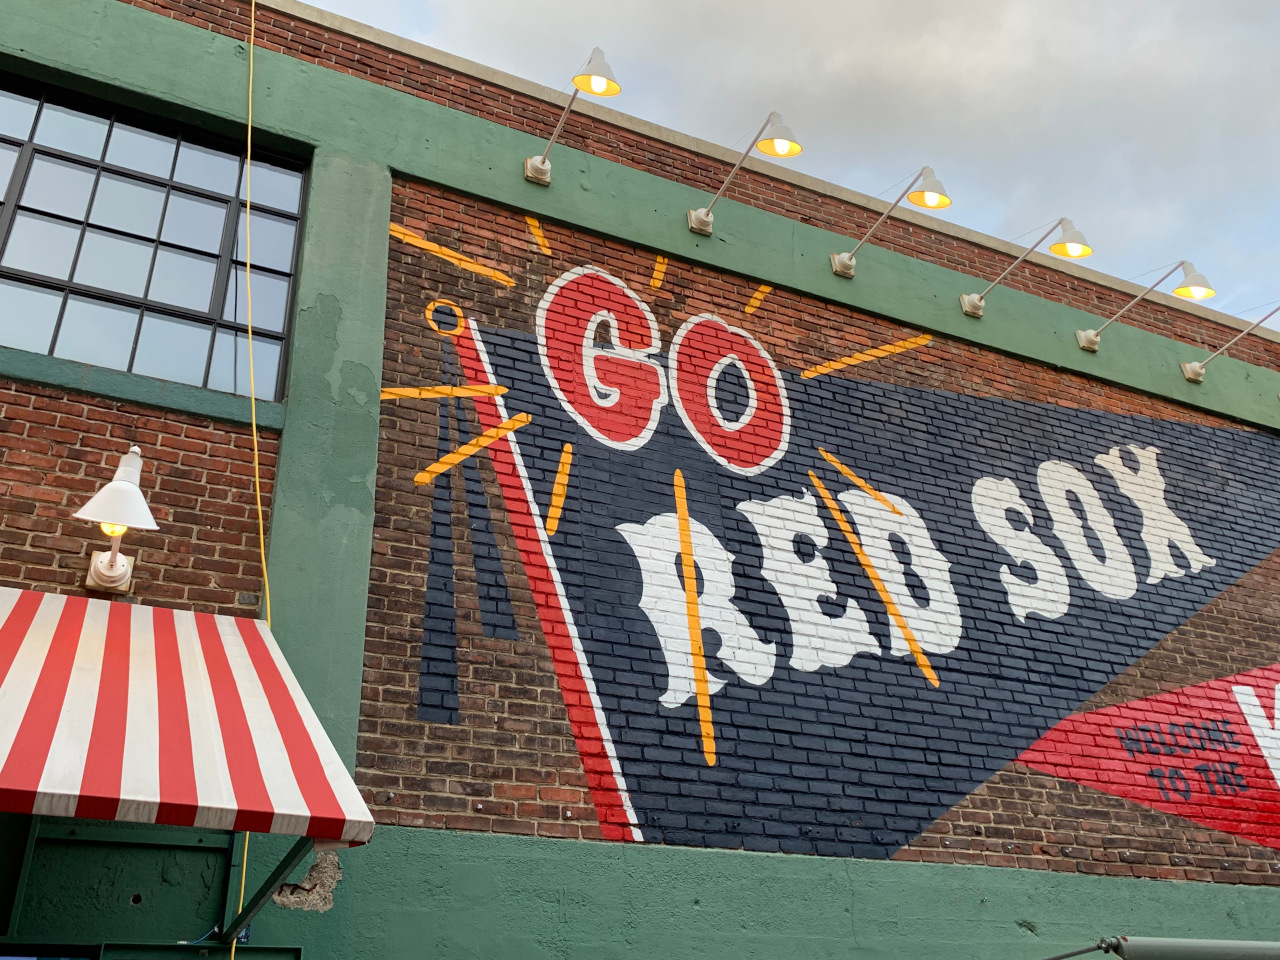 Fenway Stadium, home to Red Sox, is one of the best places to visit in Boston. Discover the top Boston landmarks as well as off the beaten path things to see from this article.